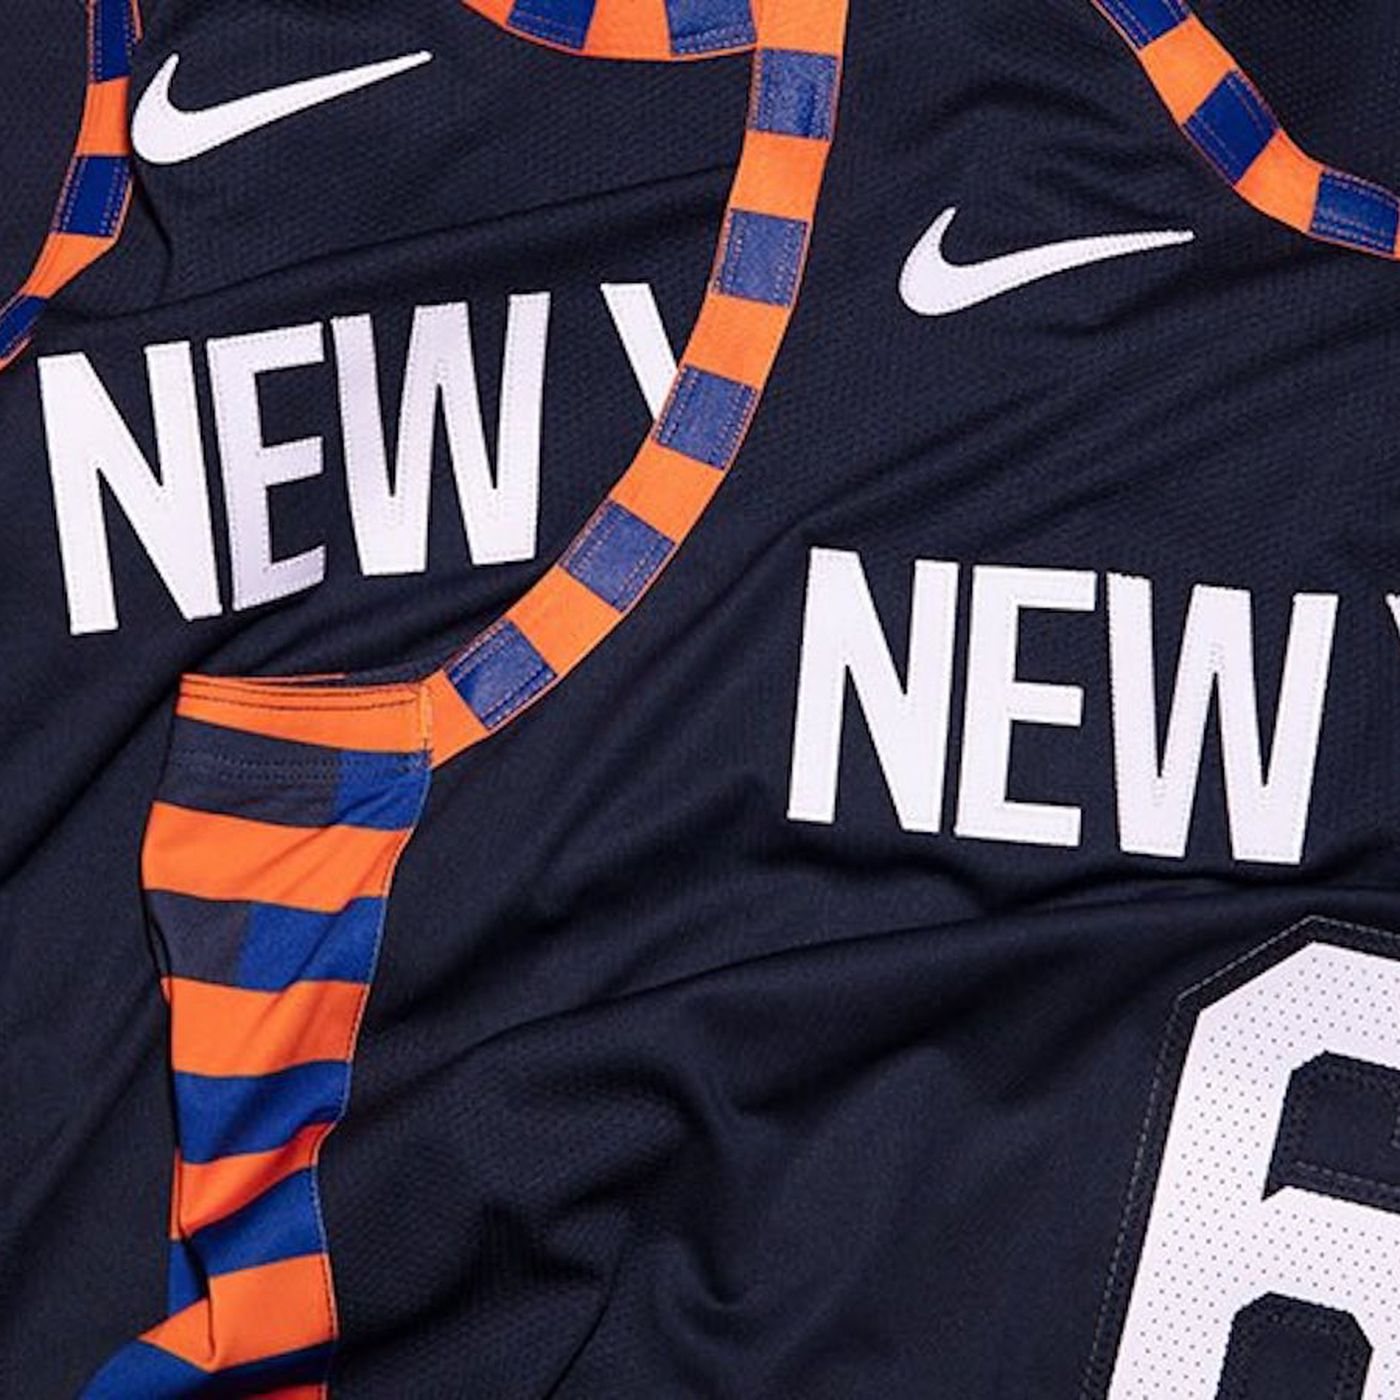 f72dd8b5 The 2018-19 Knicks City Edition Uniforms are Here! - Posting and ...